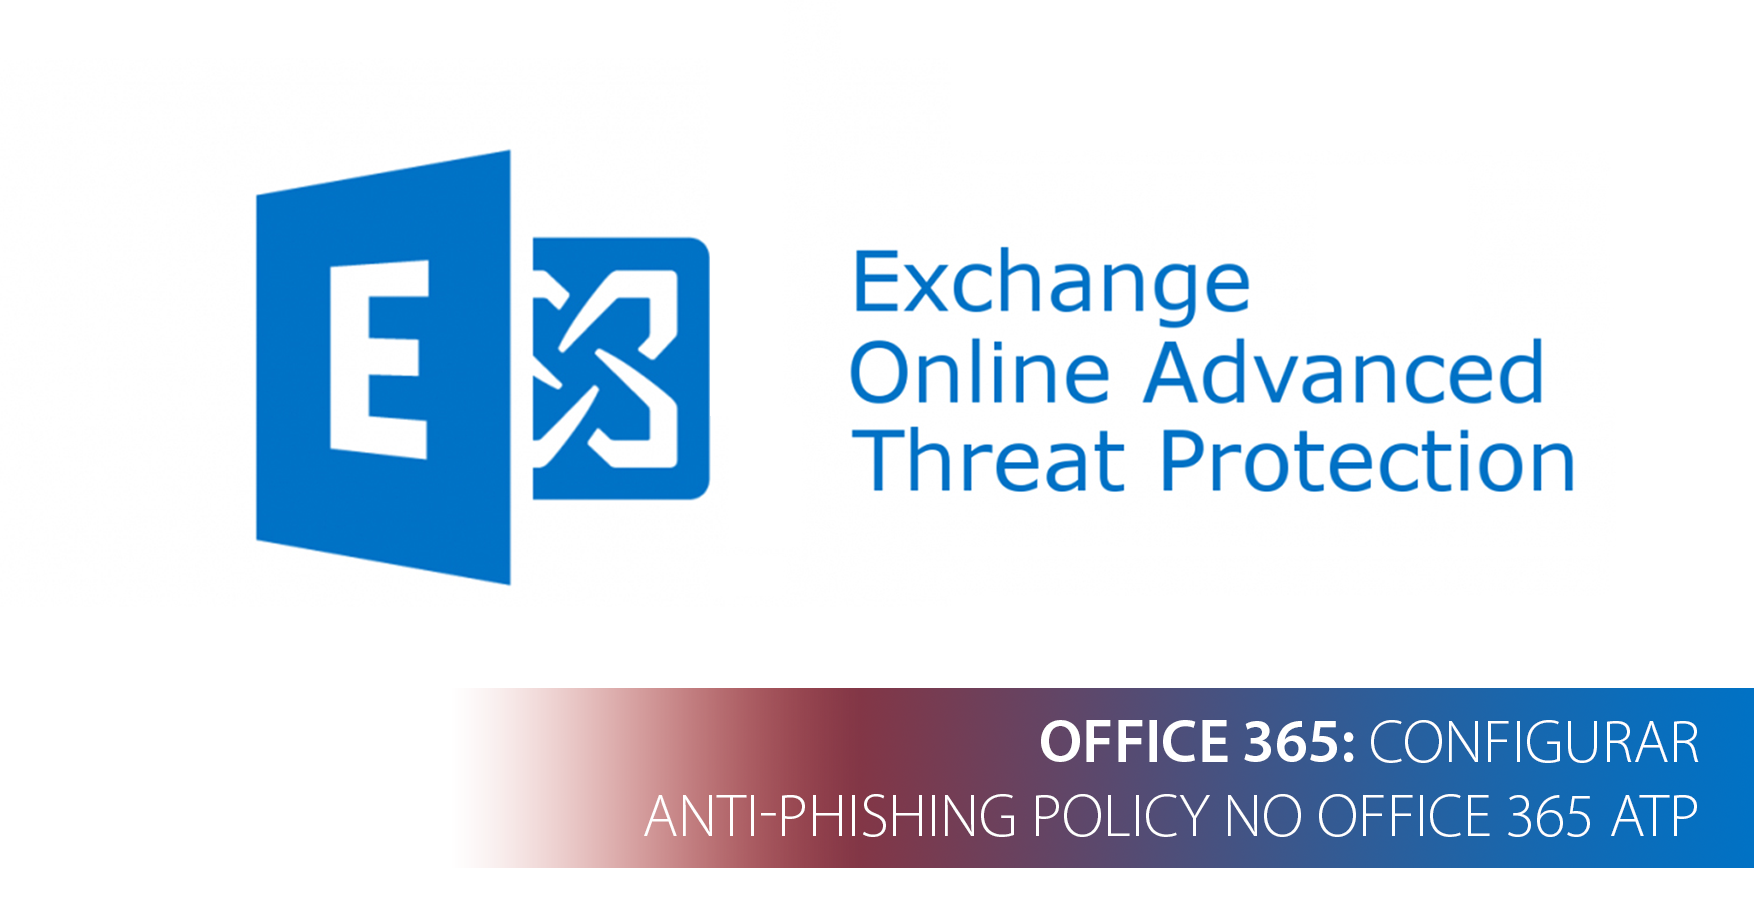 How To: Configurar Anti-Phishing Policy no Office 365 ATP